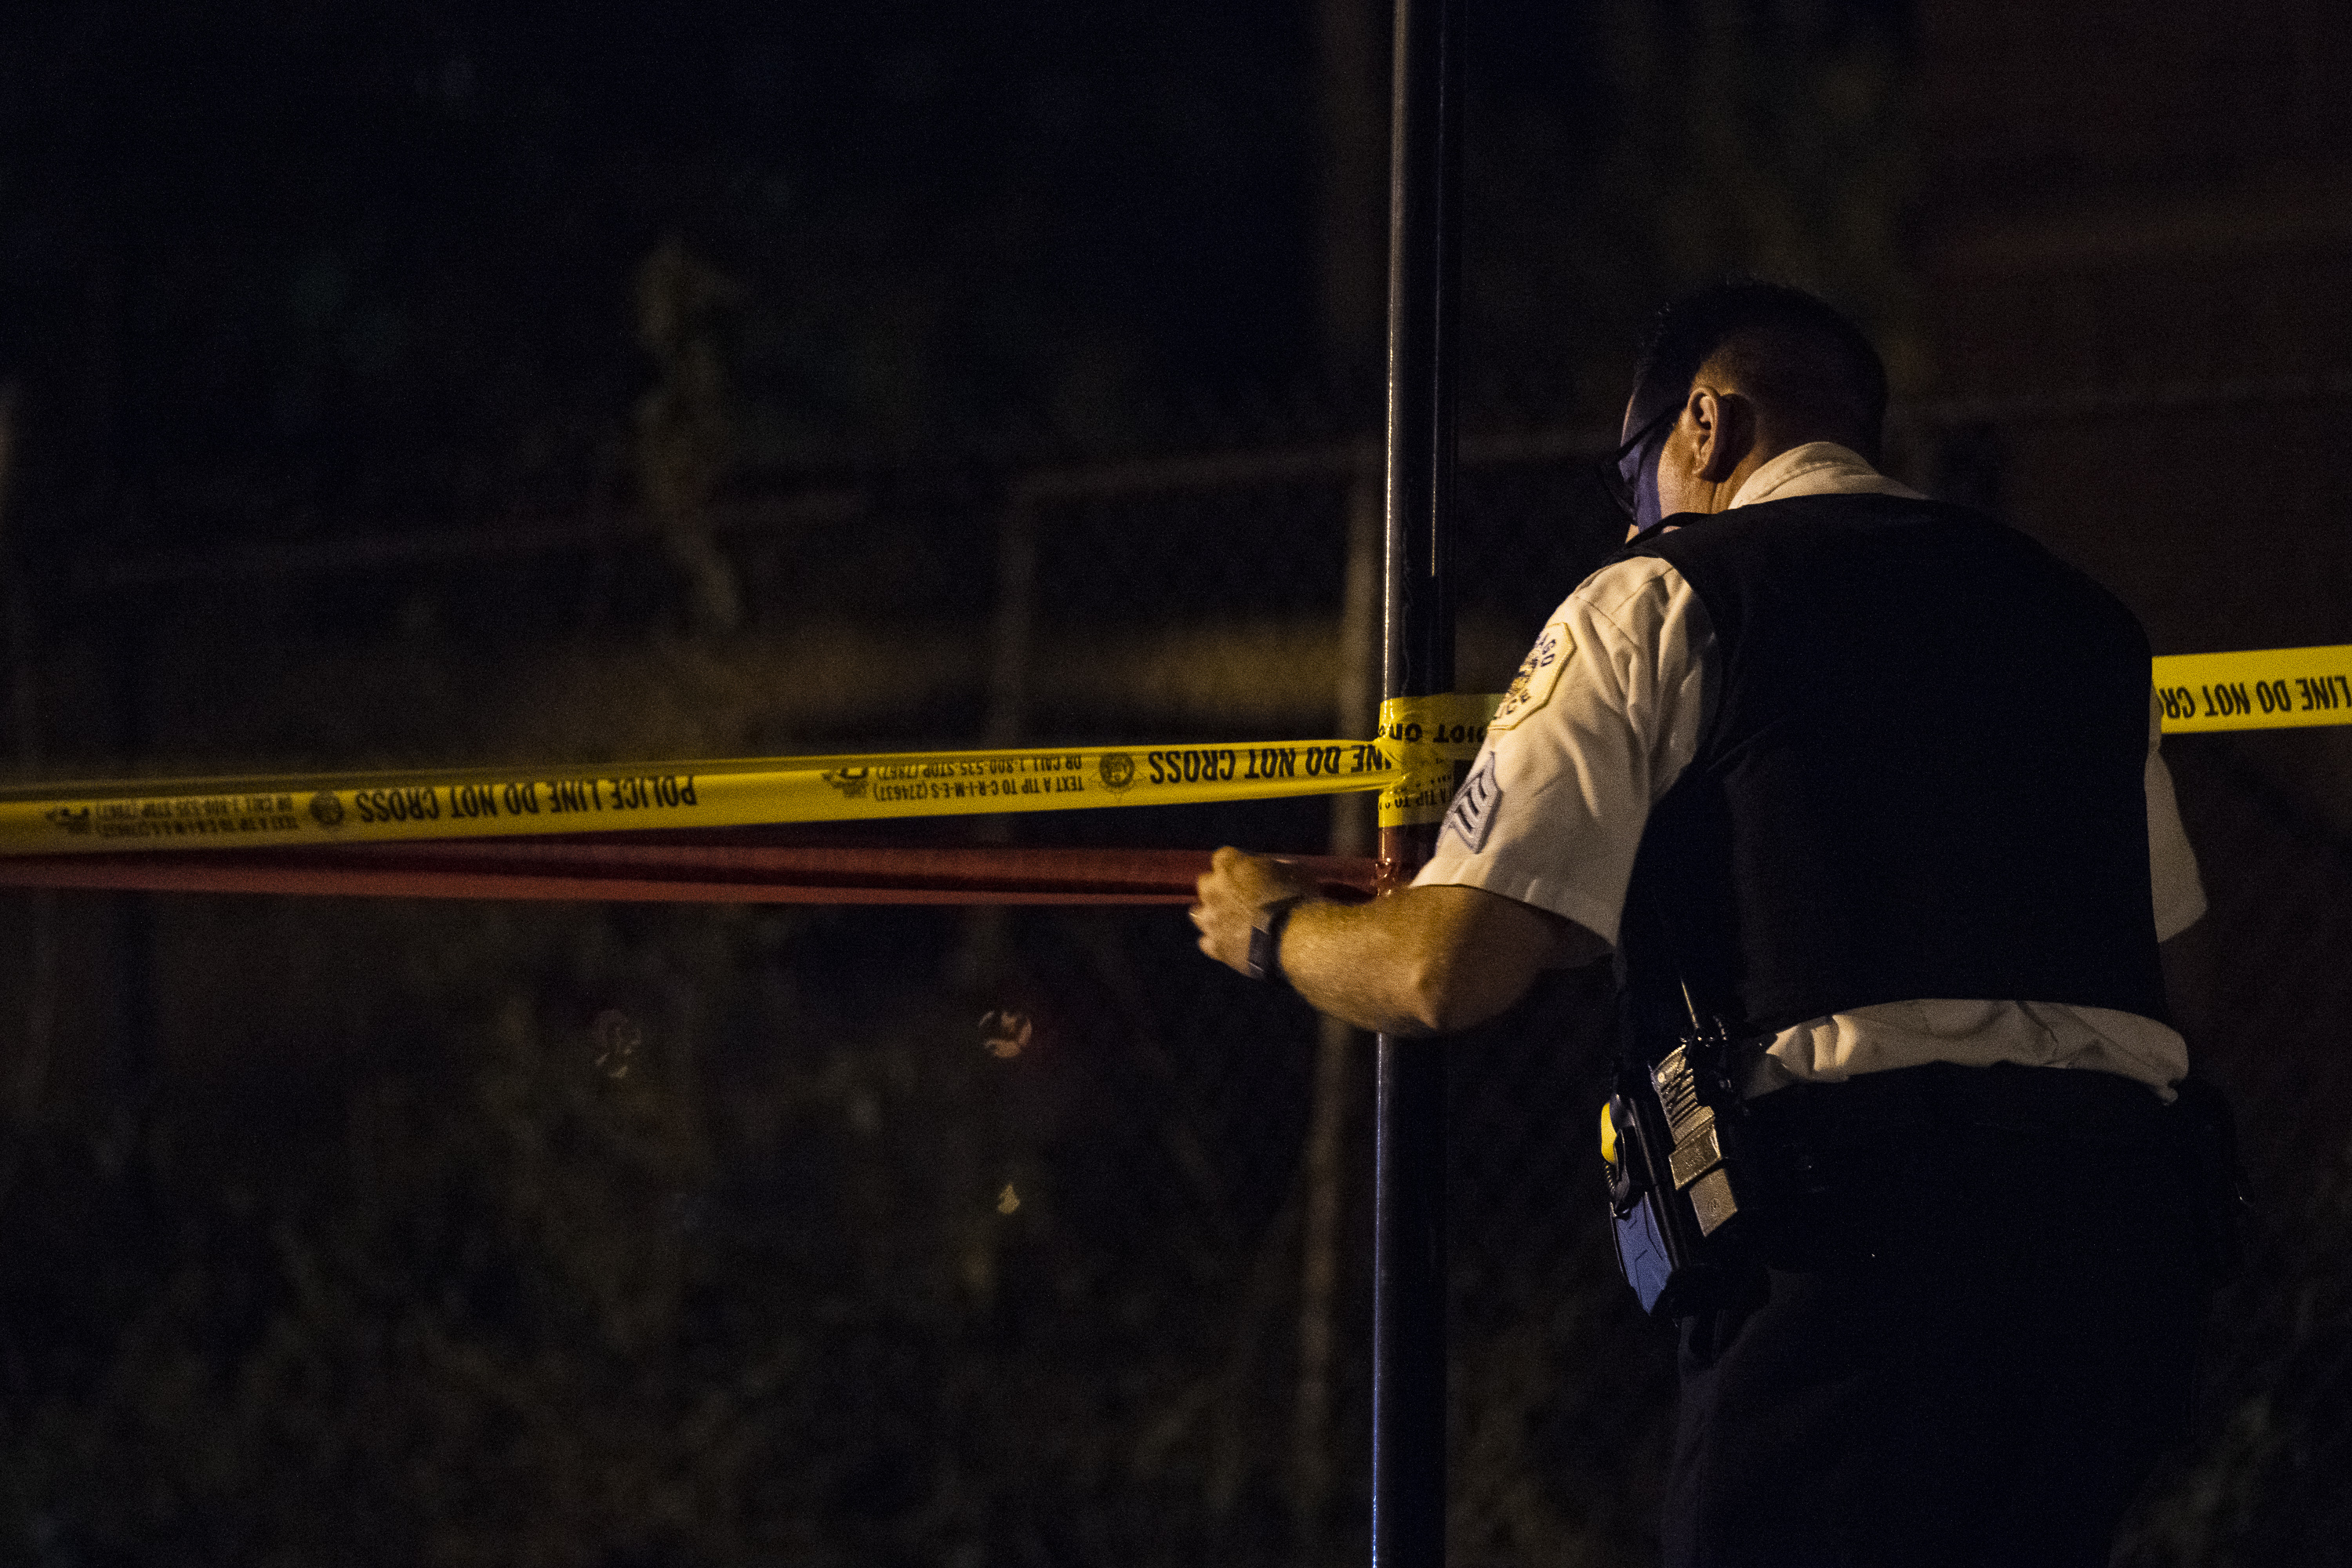 Two women were hospitalized after they were shot Dec. 1, 2019 in Rosemoor.